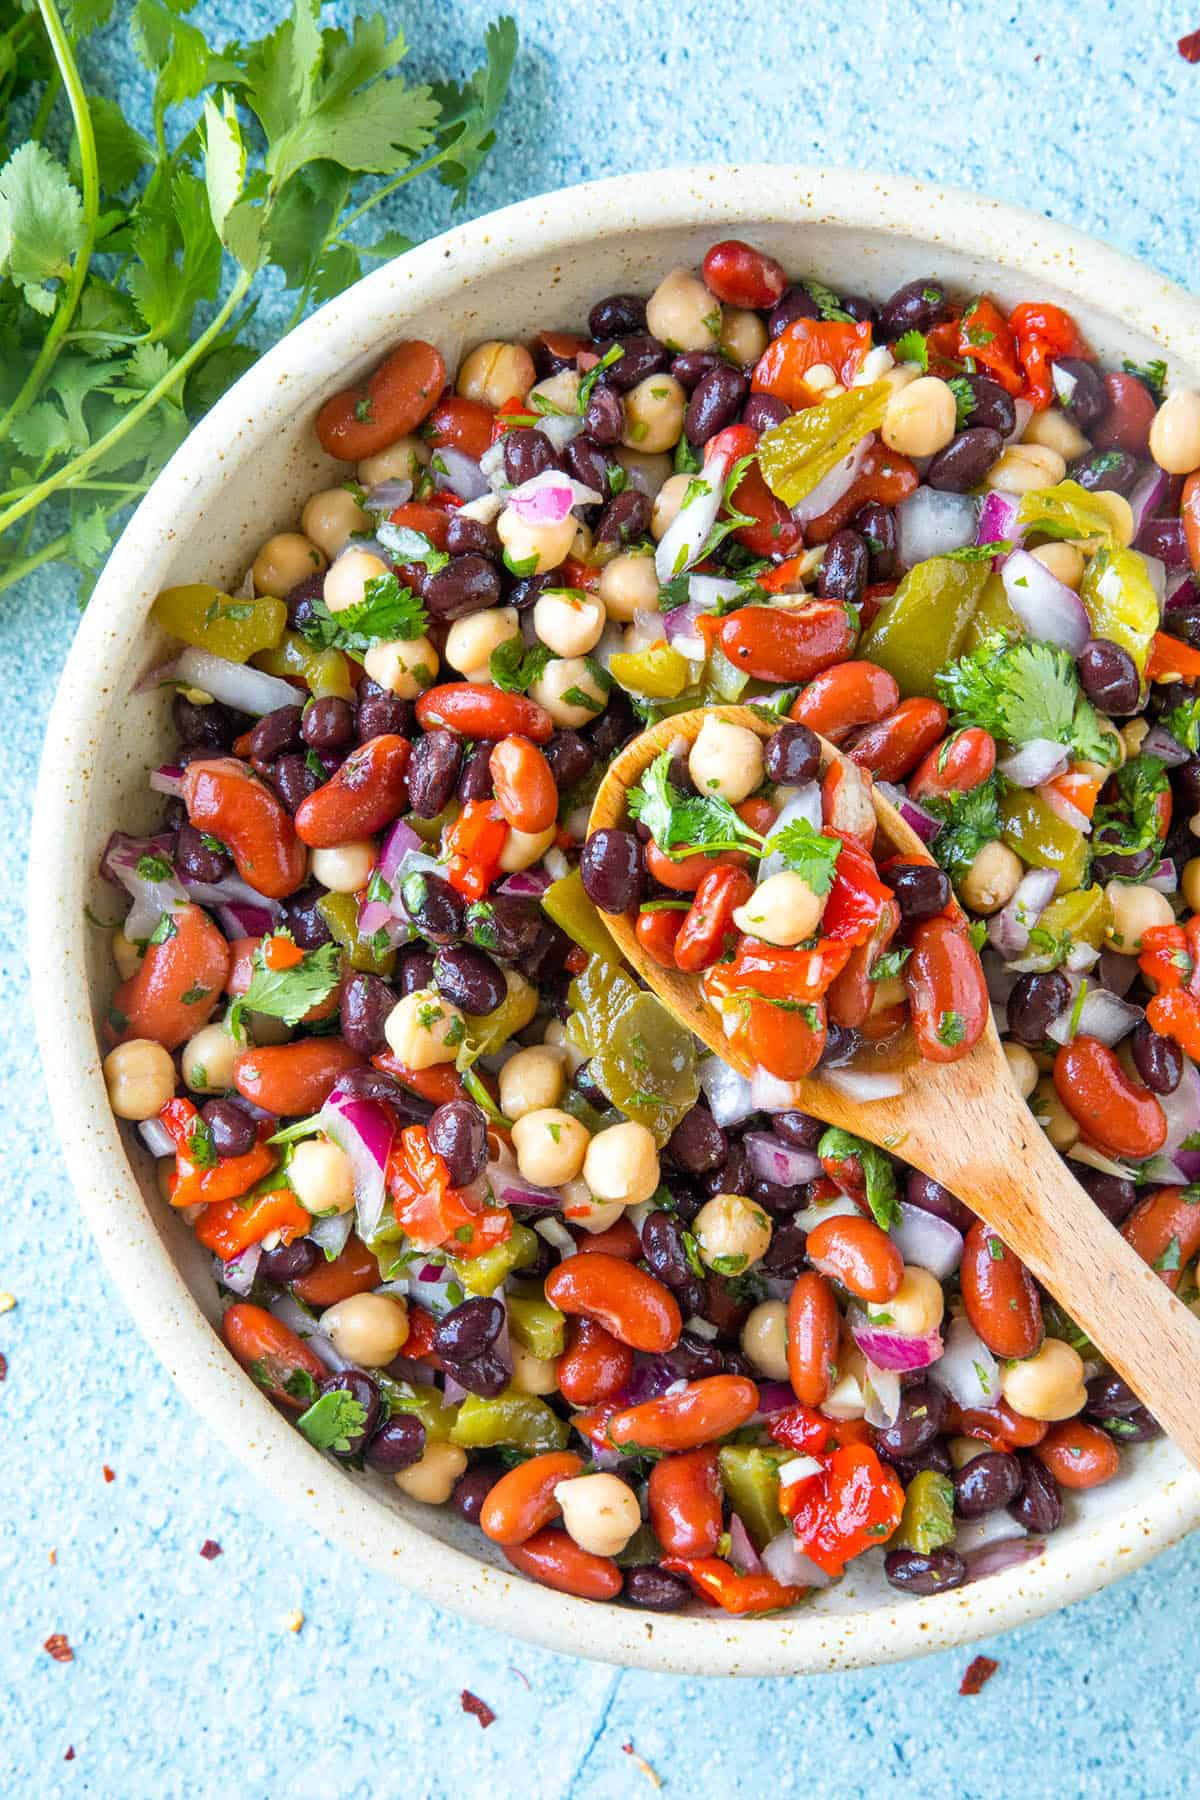 Mike's Zesty Three Bean Salad in a bowl